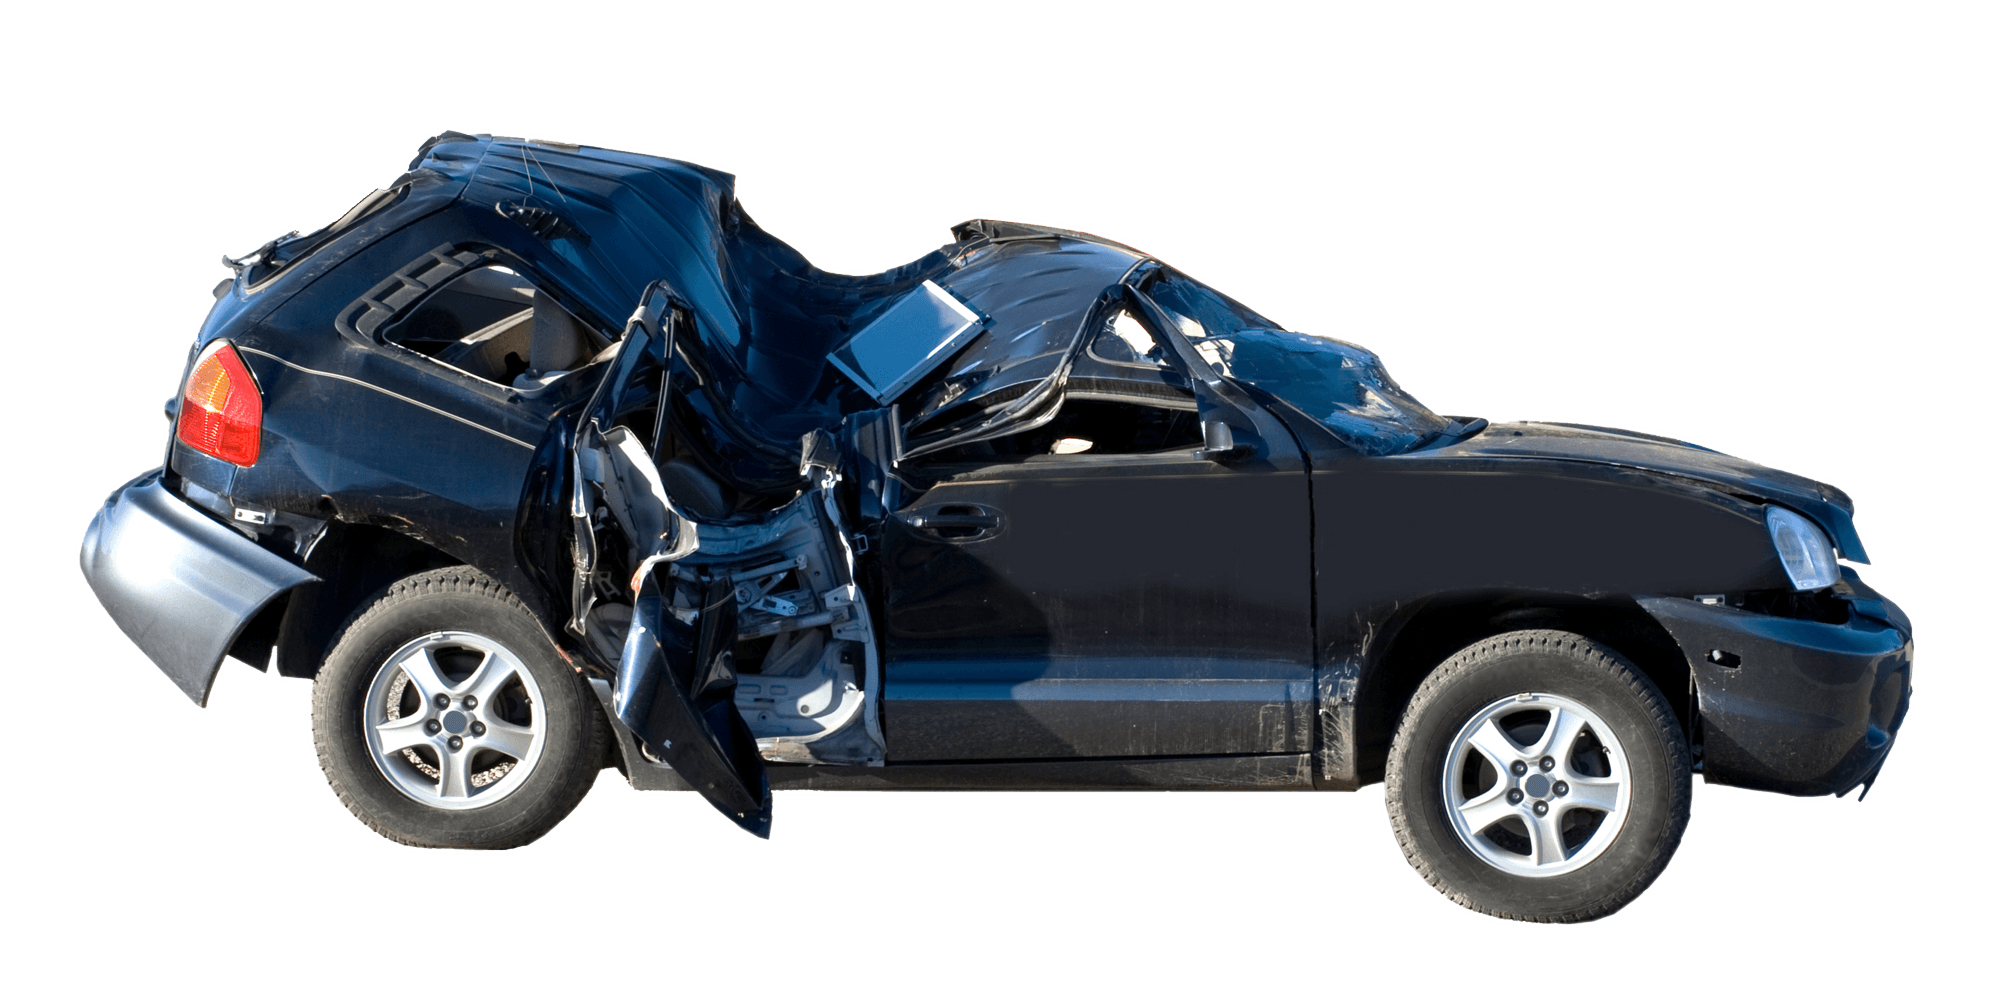 Junk cars png. Cash for tampa bay